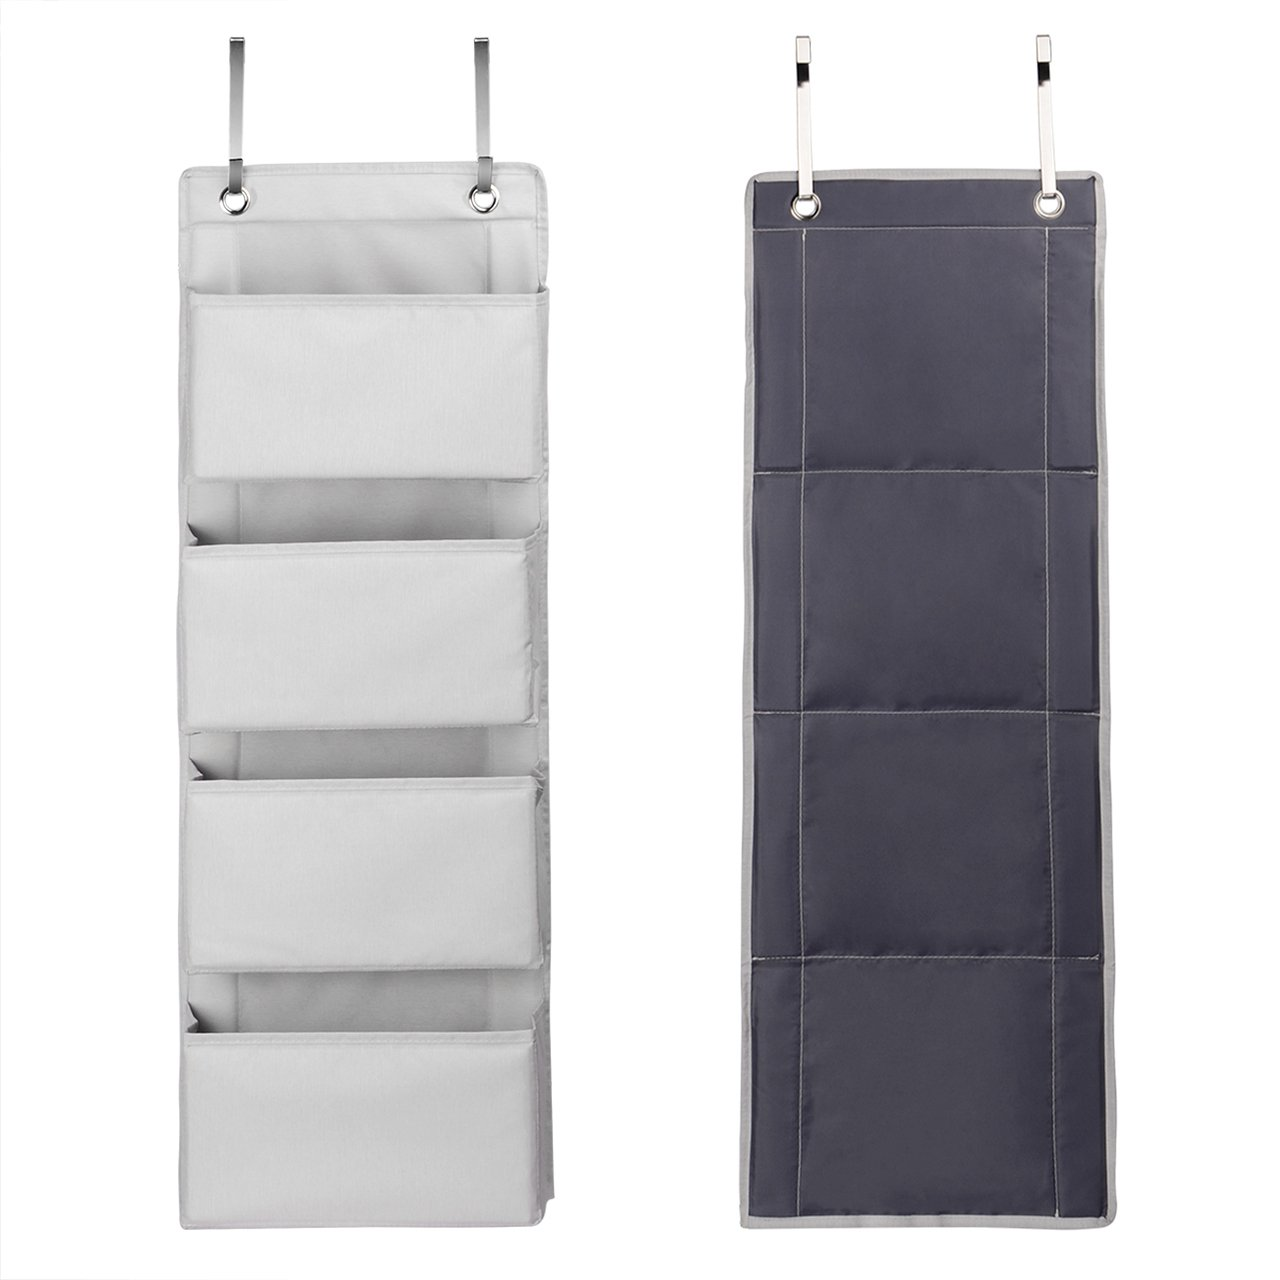 Bathroom Kitchen Polyester Wall Closet Storage Bag Case with 2 Metal Hooks for Bedroom SortWise /® 4 Pockets Over Door Hanging Organizer